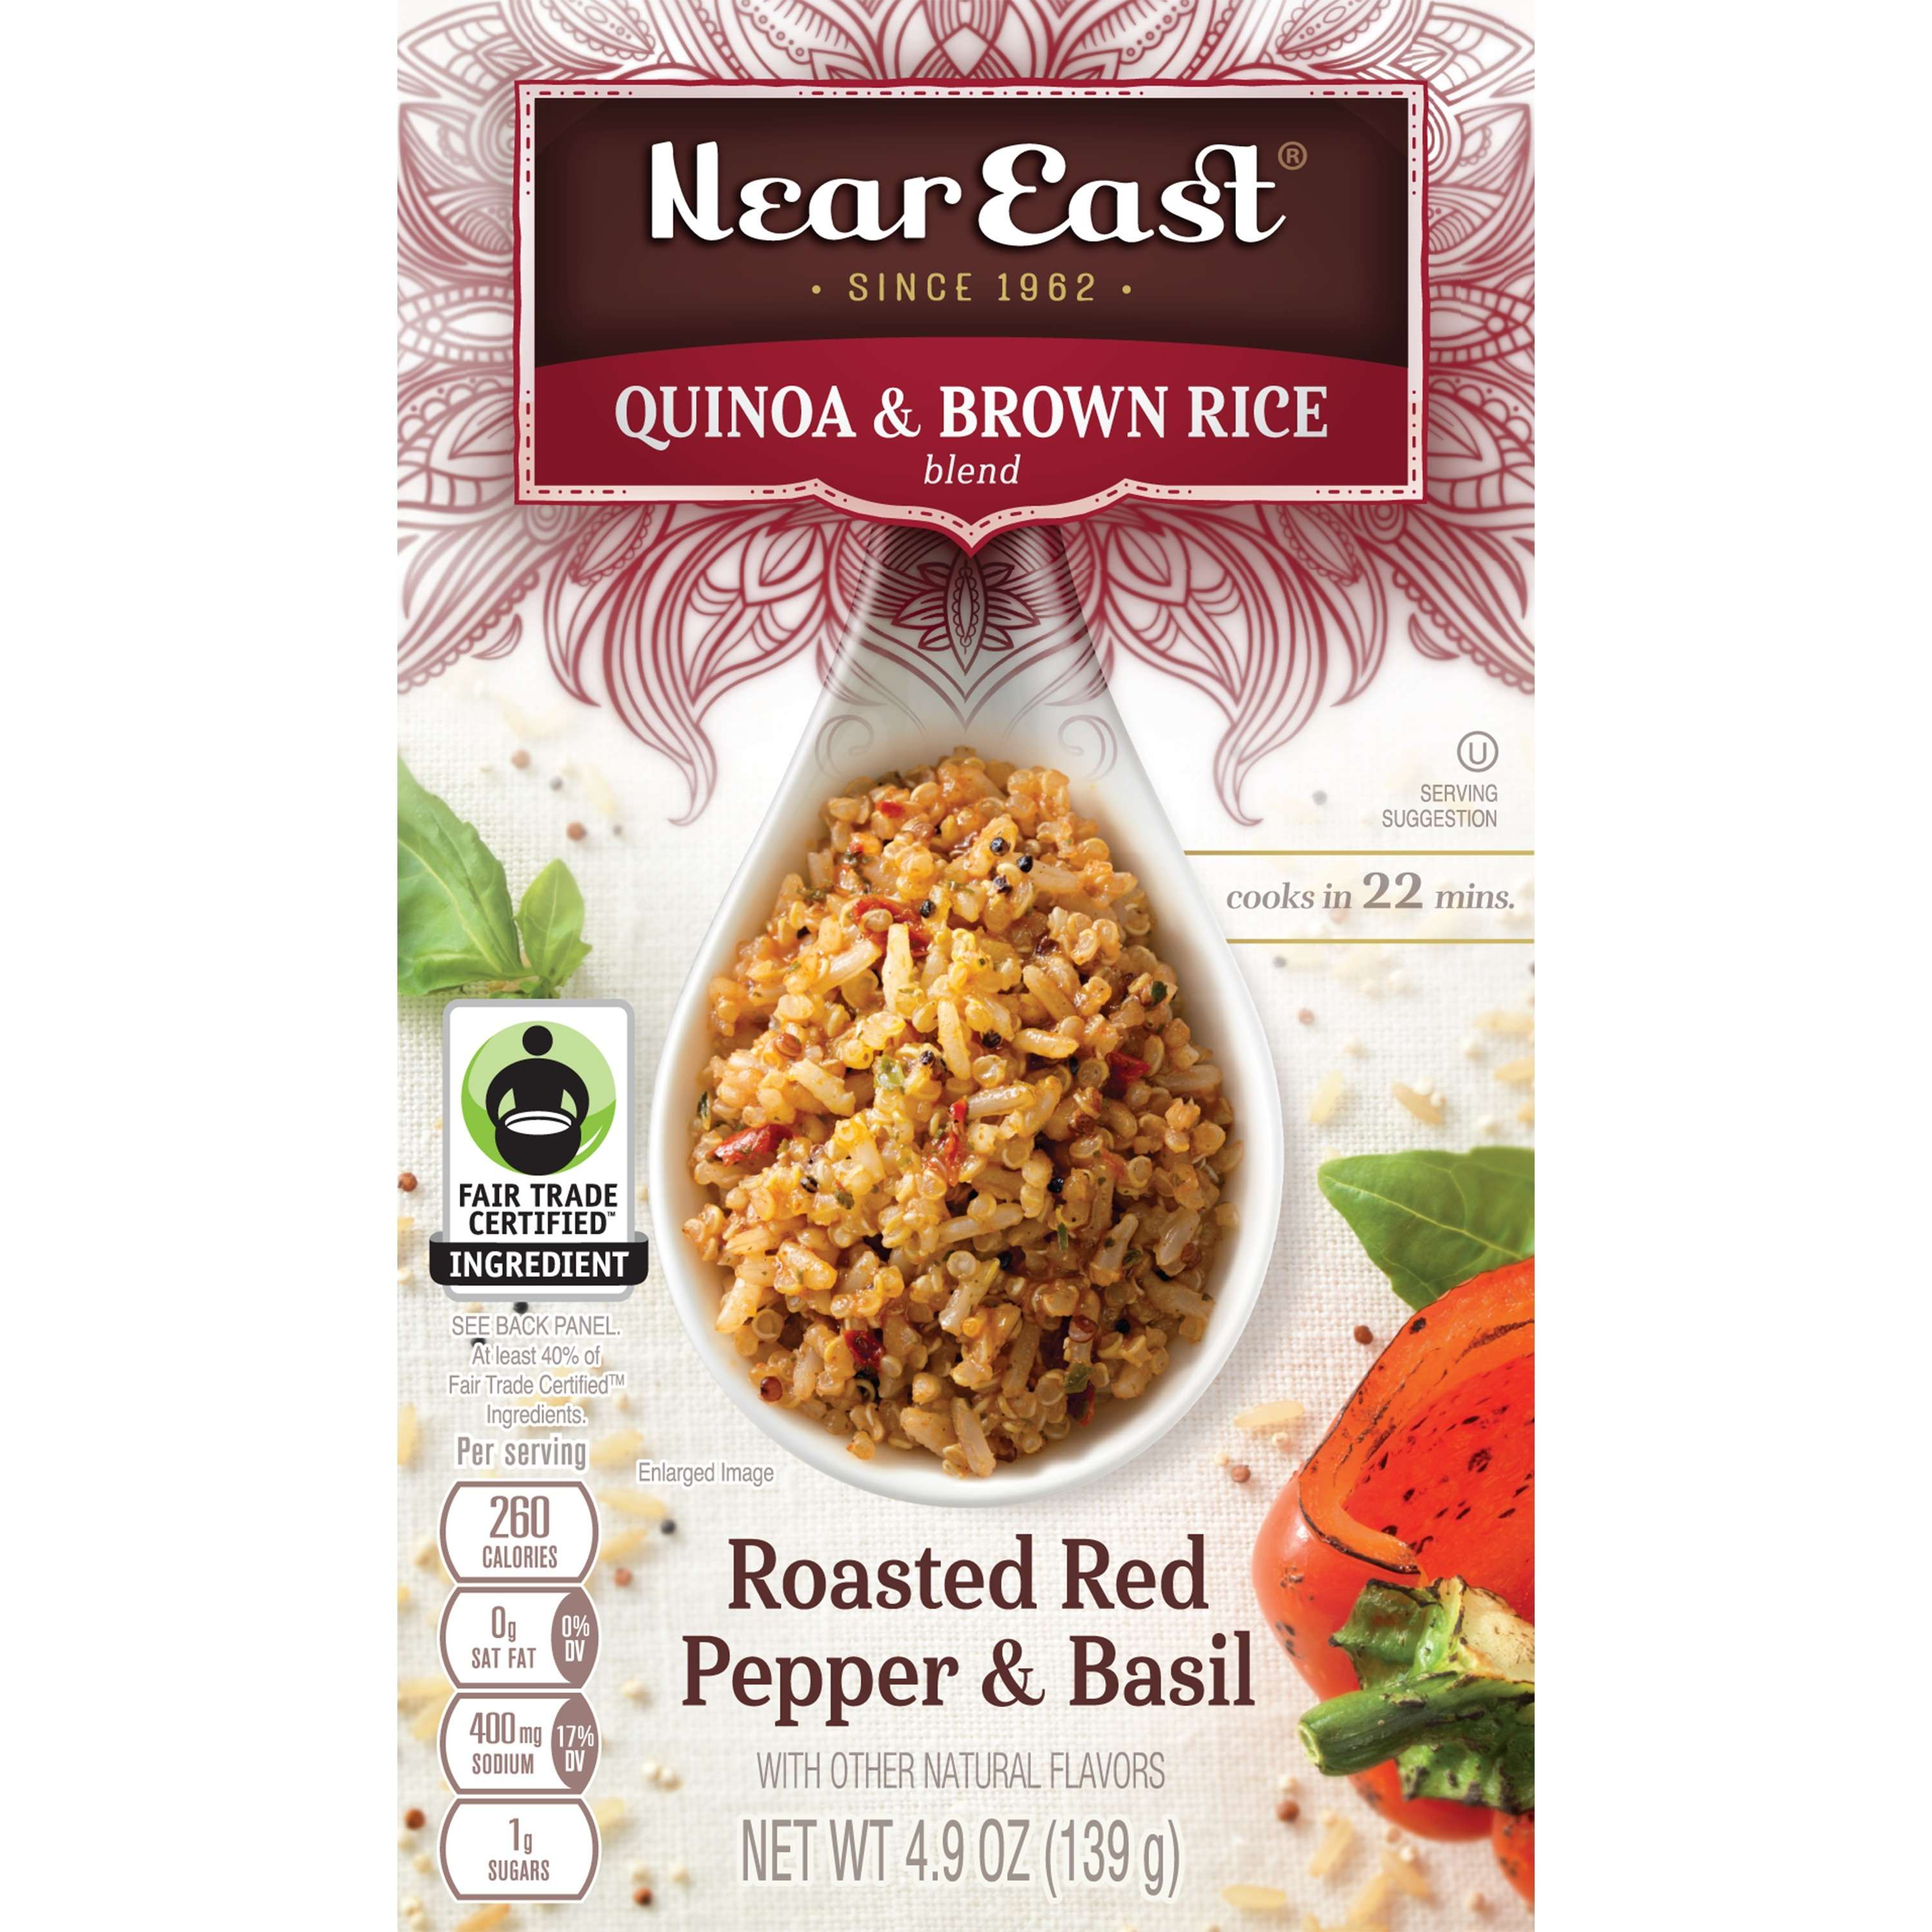 NEAR EAST - QUINOA & BROWN RICE - (Roasted Red Pepper & Basil) - 4.9oz